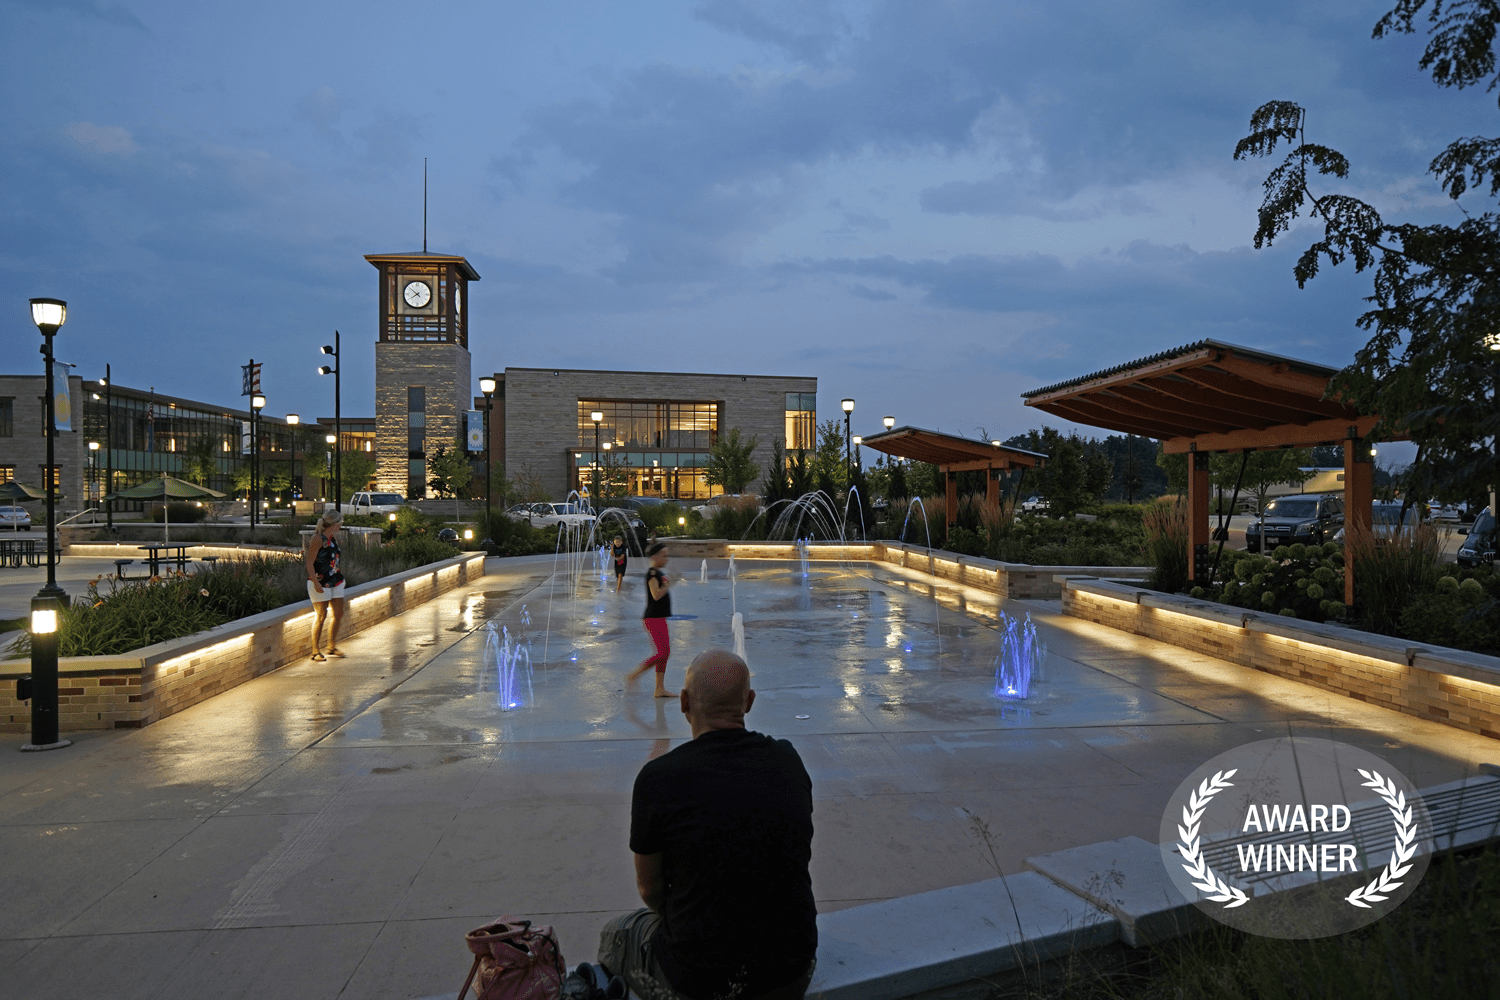 Drexel Town Square. Oak Creek, WI. 2020.